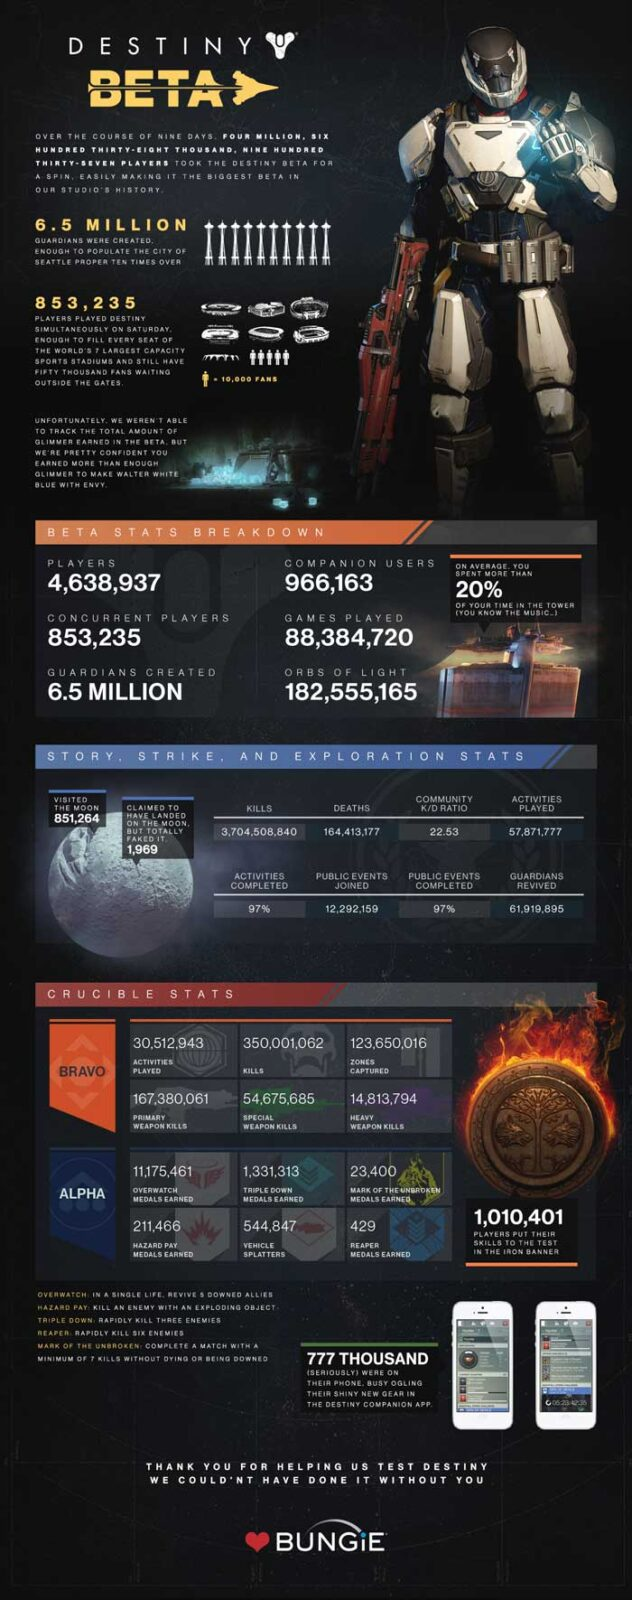 DESTINY-BETA-STAT